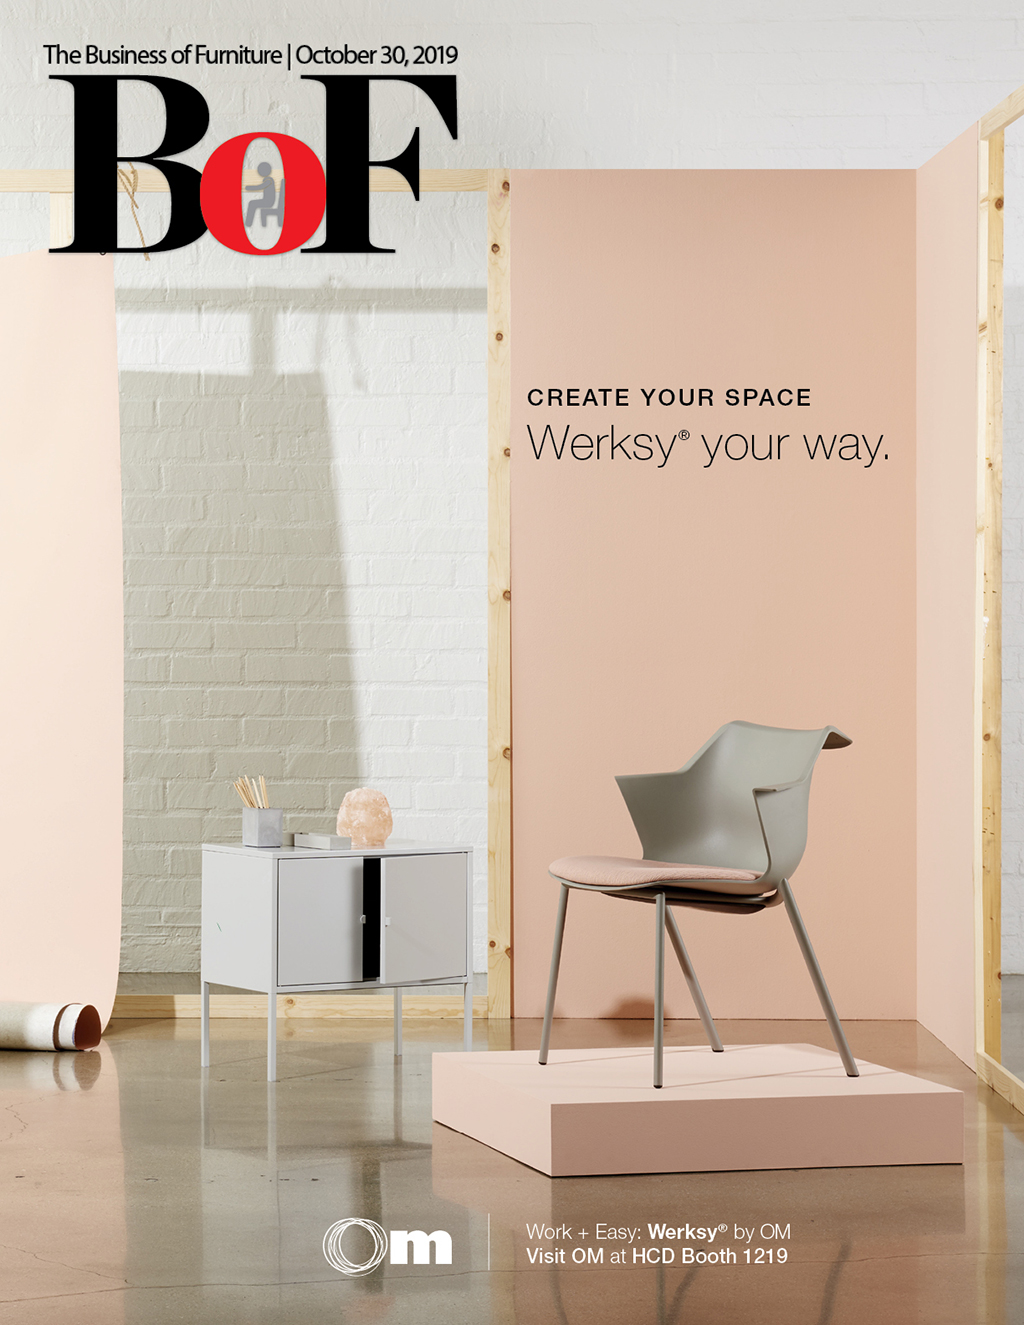 Amazing Bellow Press Latest Editions Of Business Of Furniture And Beatyapartments Chair Design Images Beatyapartmentscom